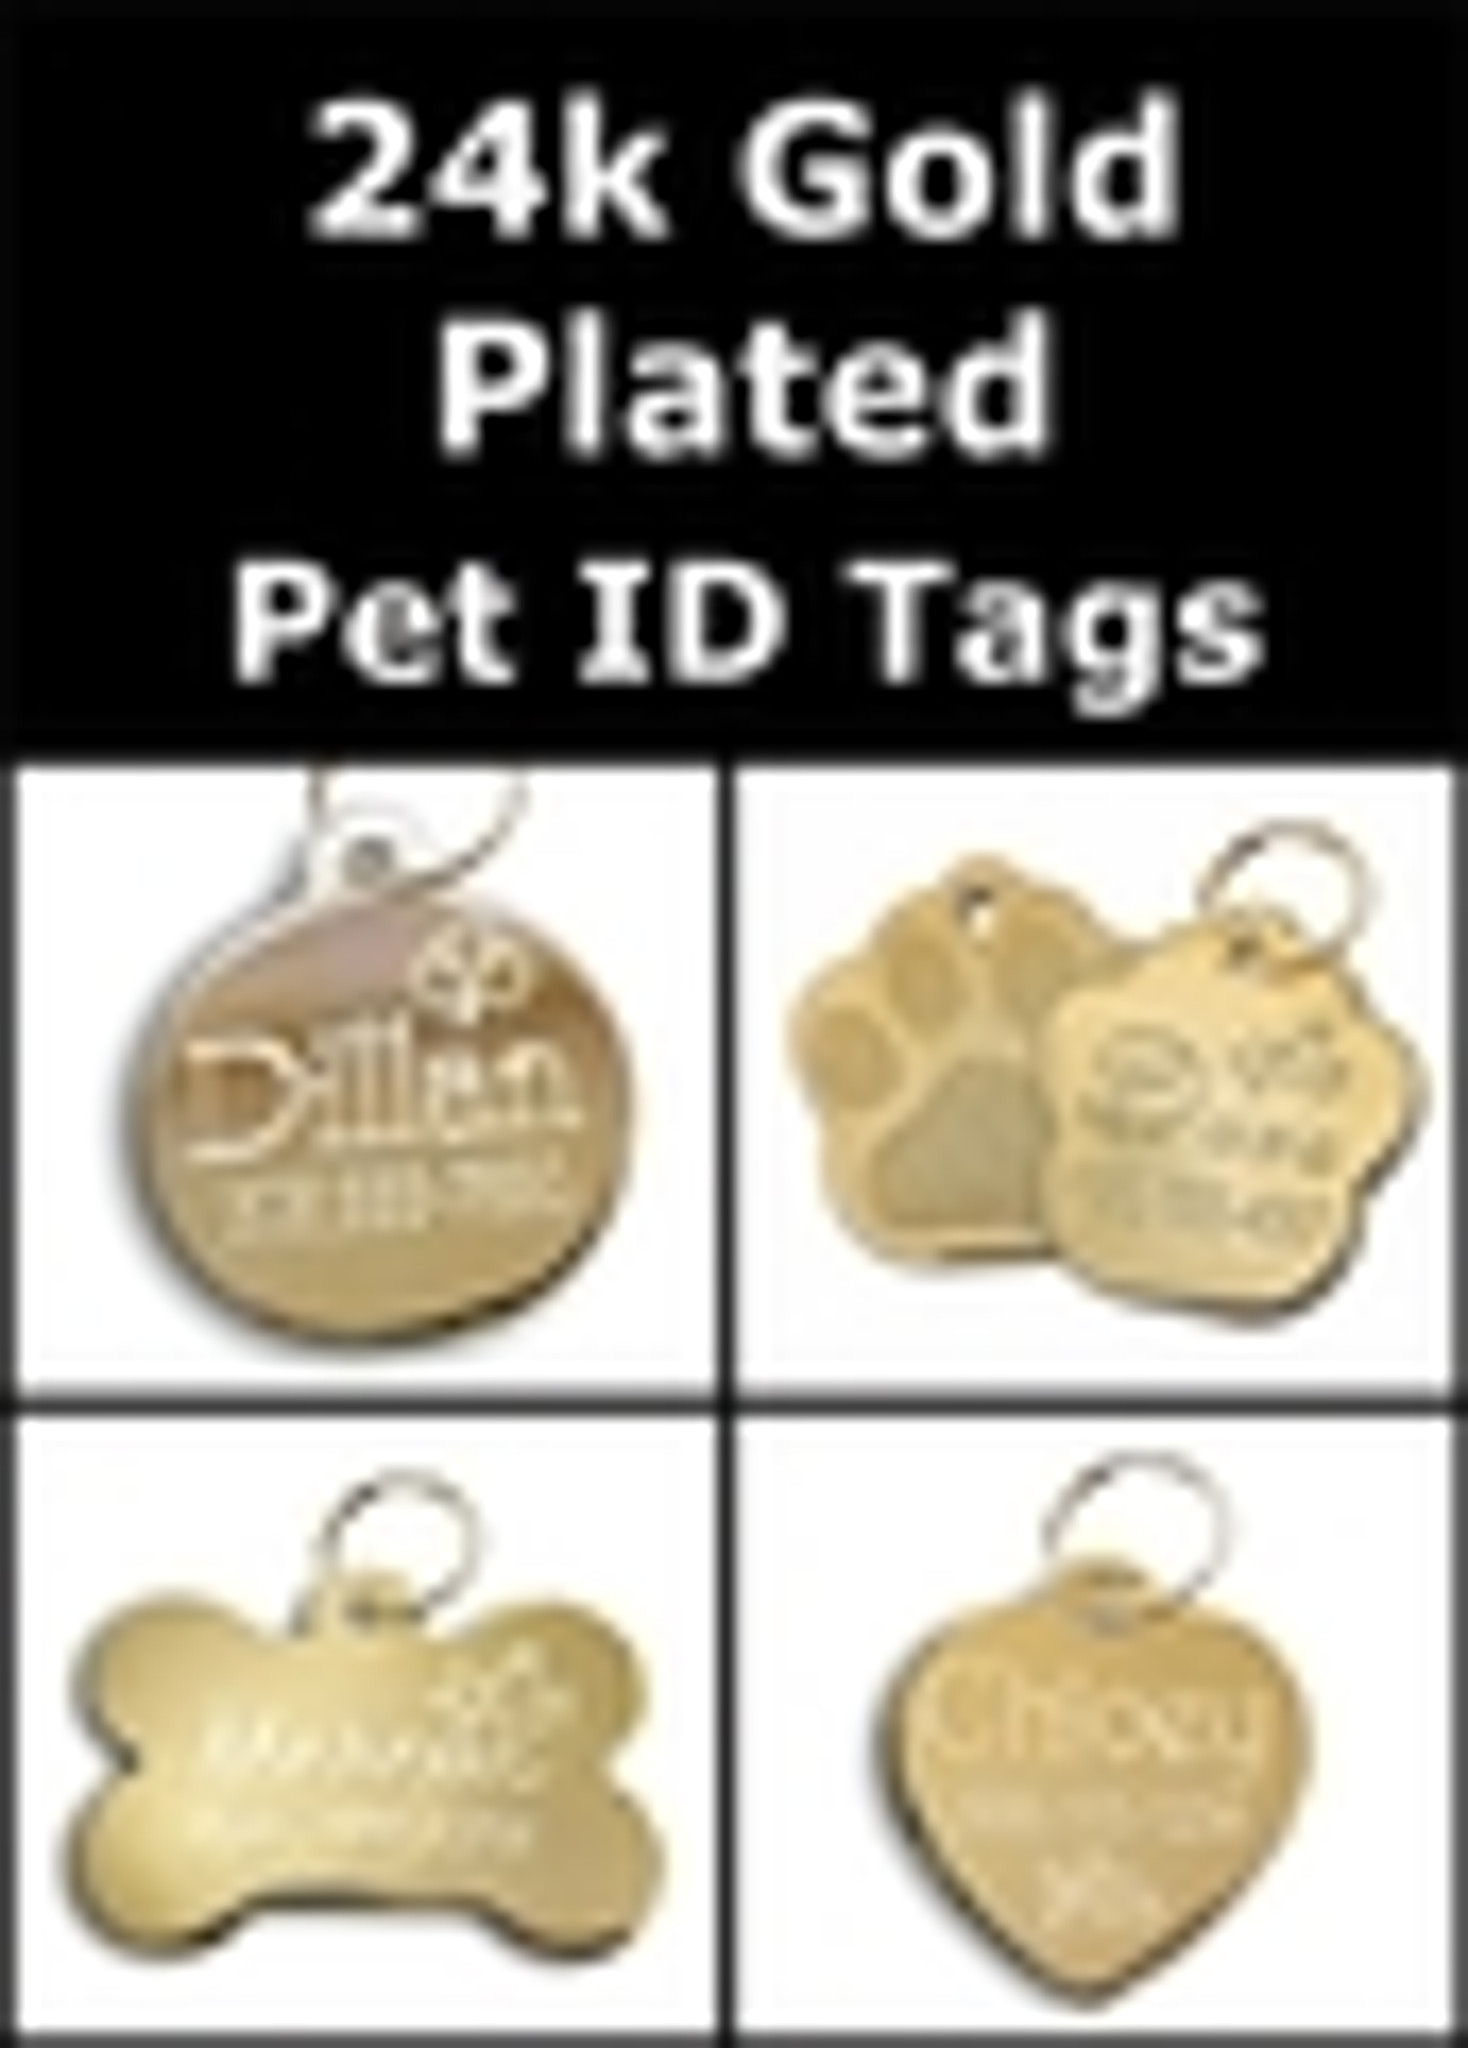 24k Gold Plated Pet ID Tags